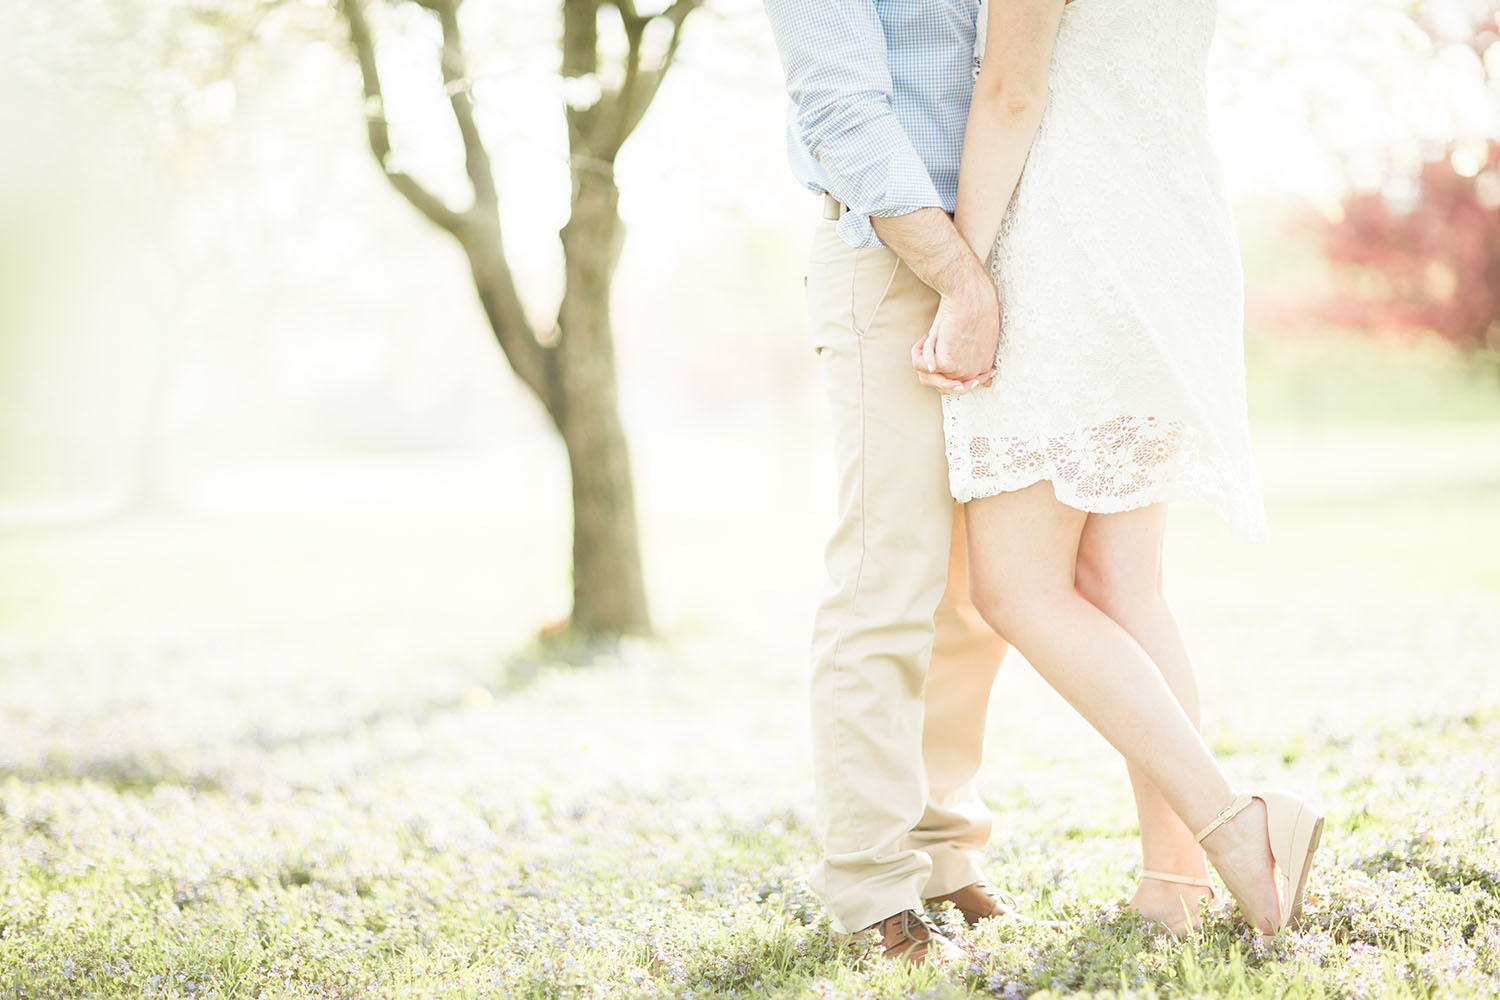 Engagement Photos: How To Make Yours Worthy Of Pinterest